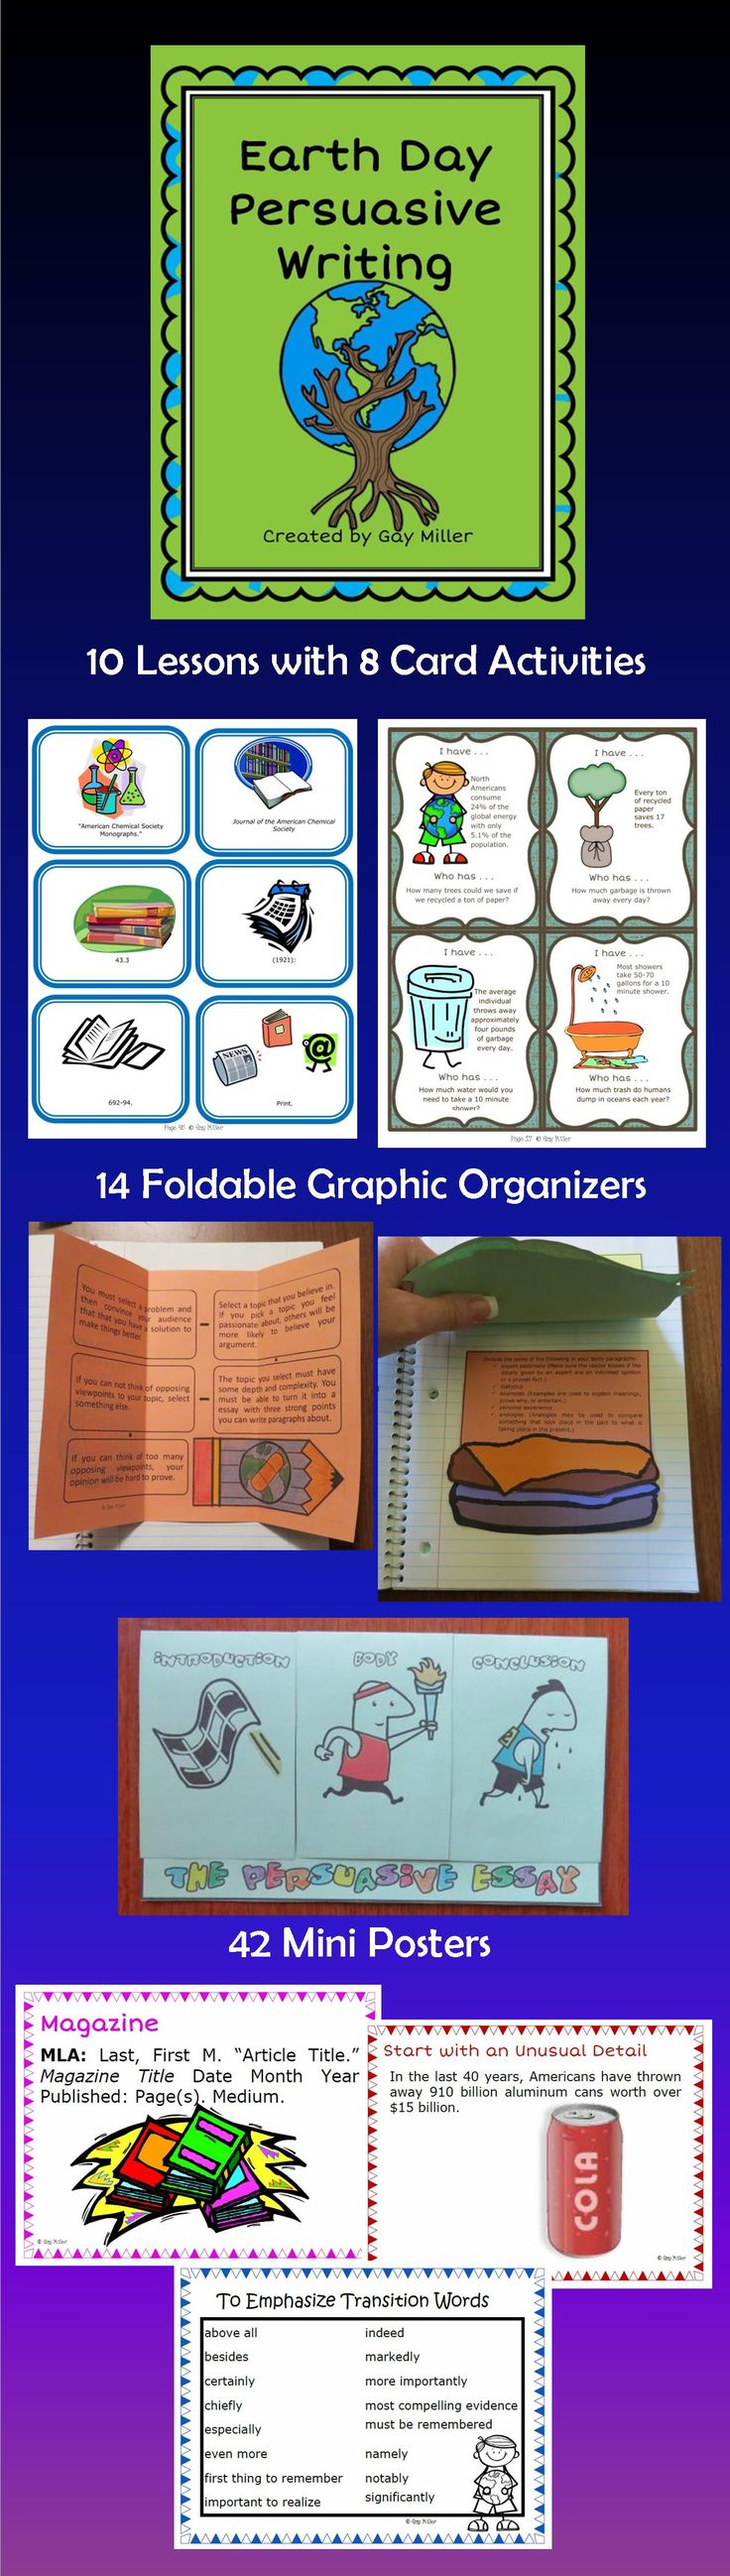 Worksheet Carnegie Storymaker 1000 images about writing on pinterest student activities and this earth day persuasive unit contains everything you will need to teach a ten lesson